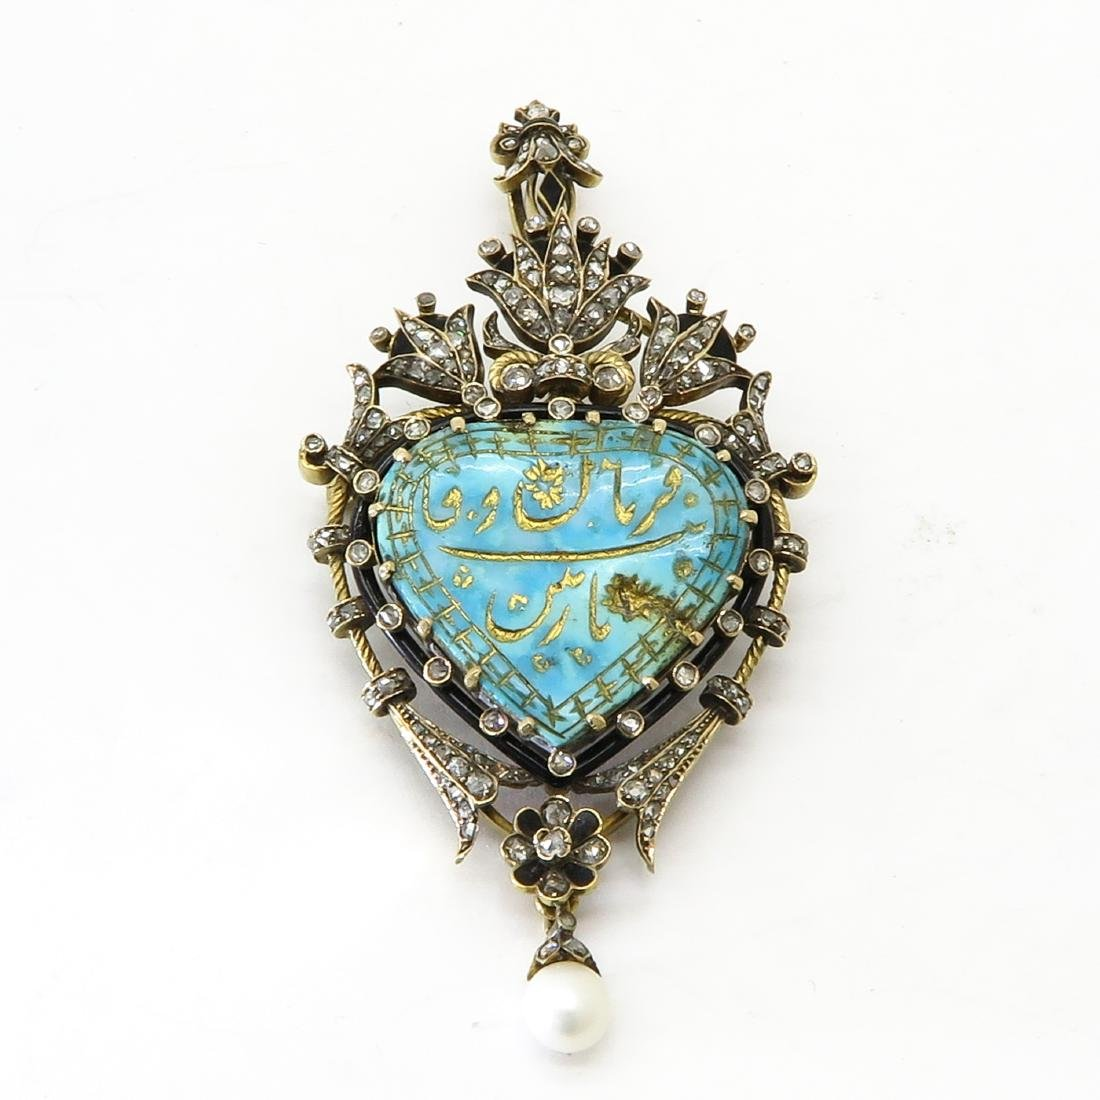 Antique Persian Brooch with Diamonds for Sjah of Persia